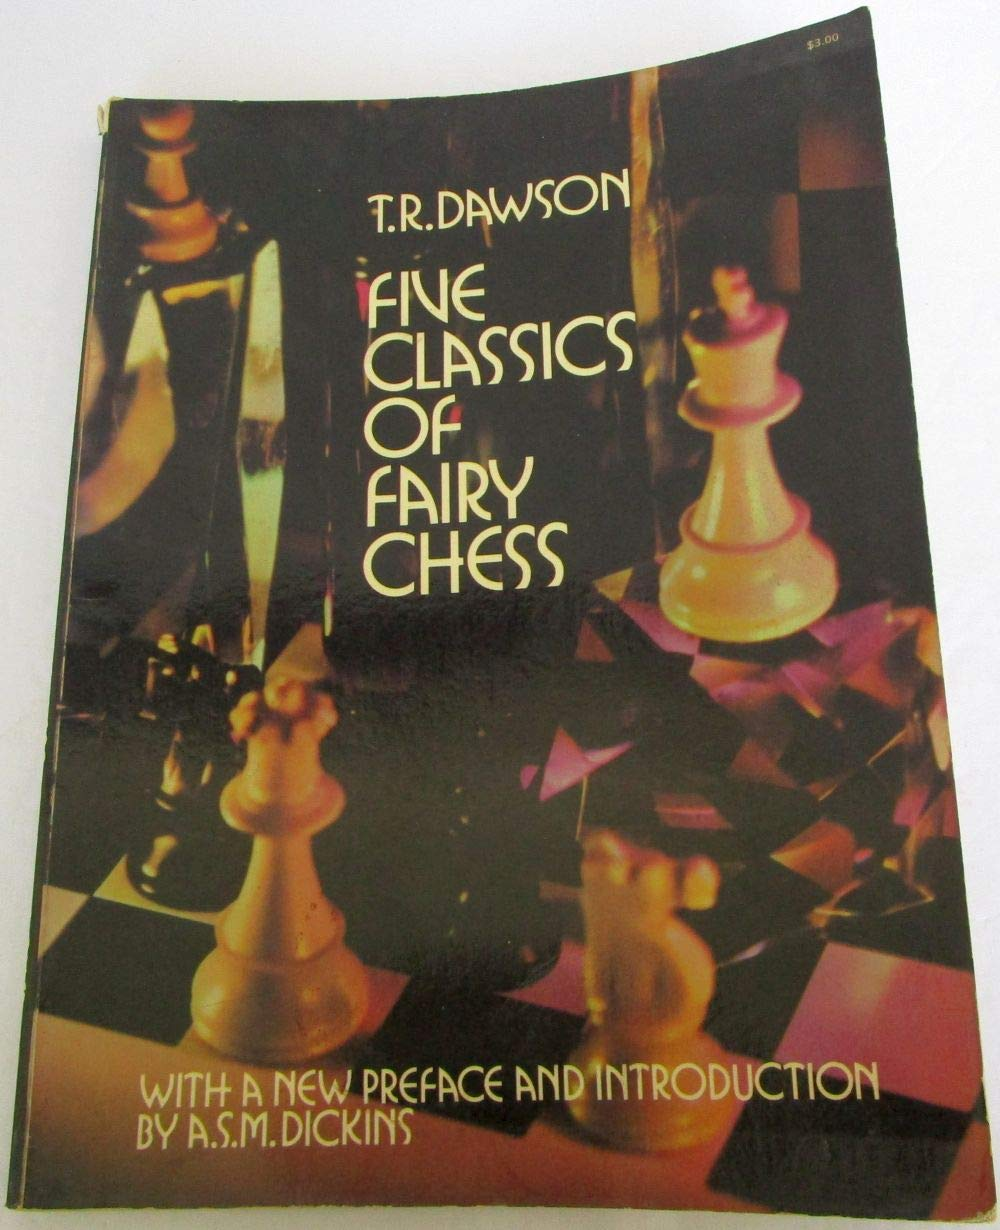 Five Classics of Fairy Chess